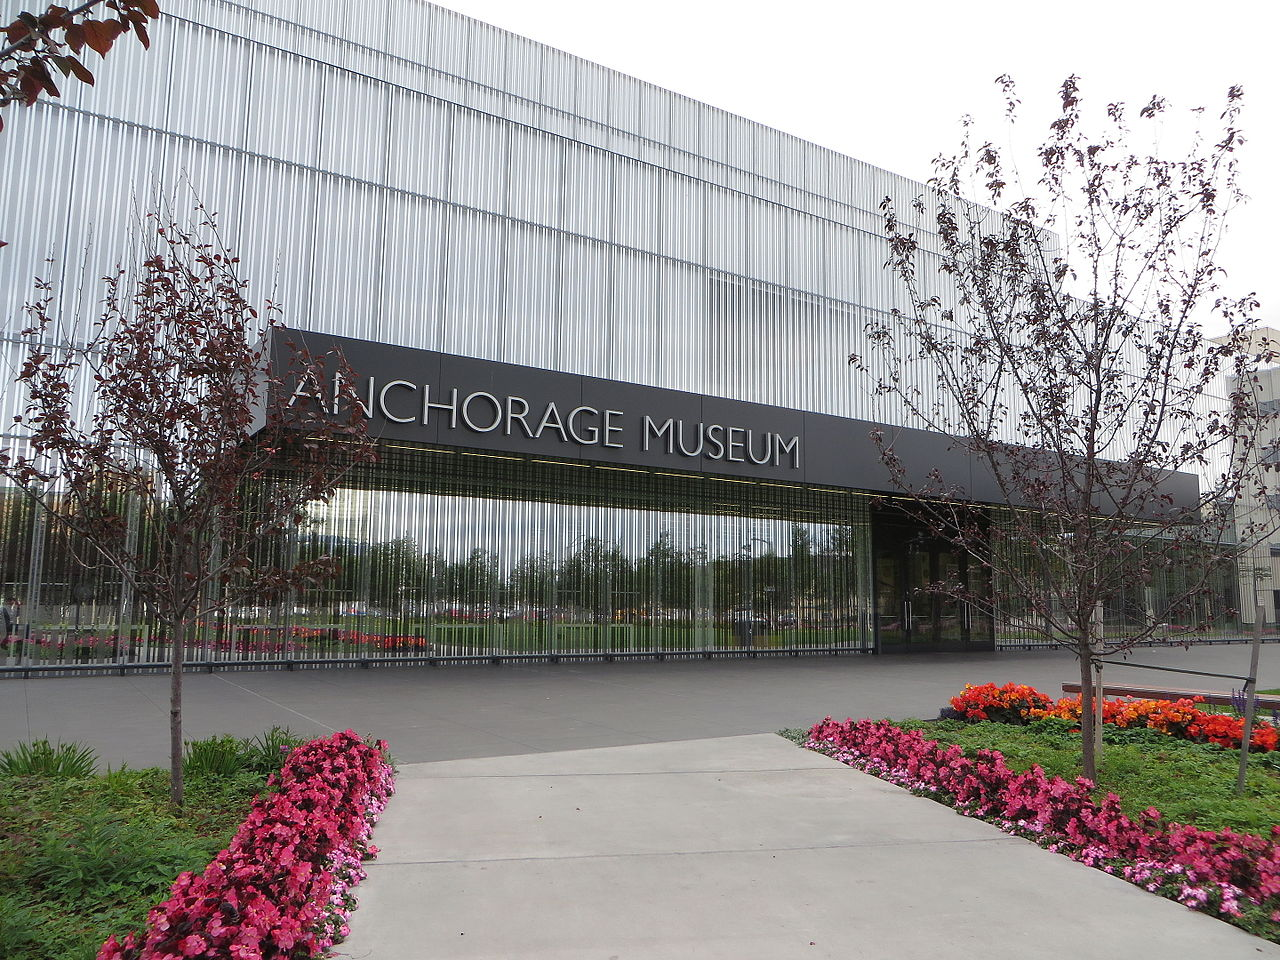 Anchorage Museum - Most Charming Destination to Visit in Anchorage, Alaska